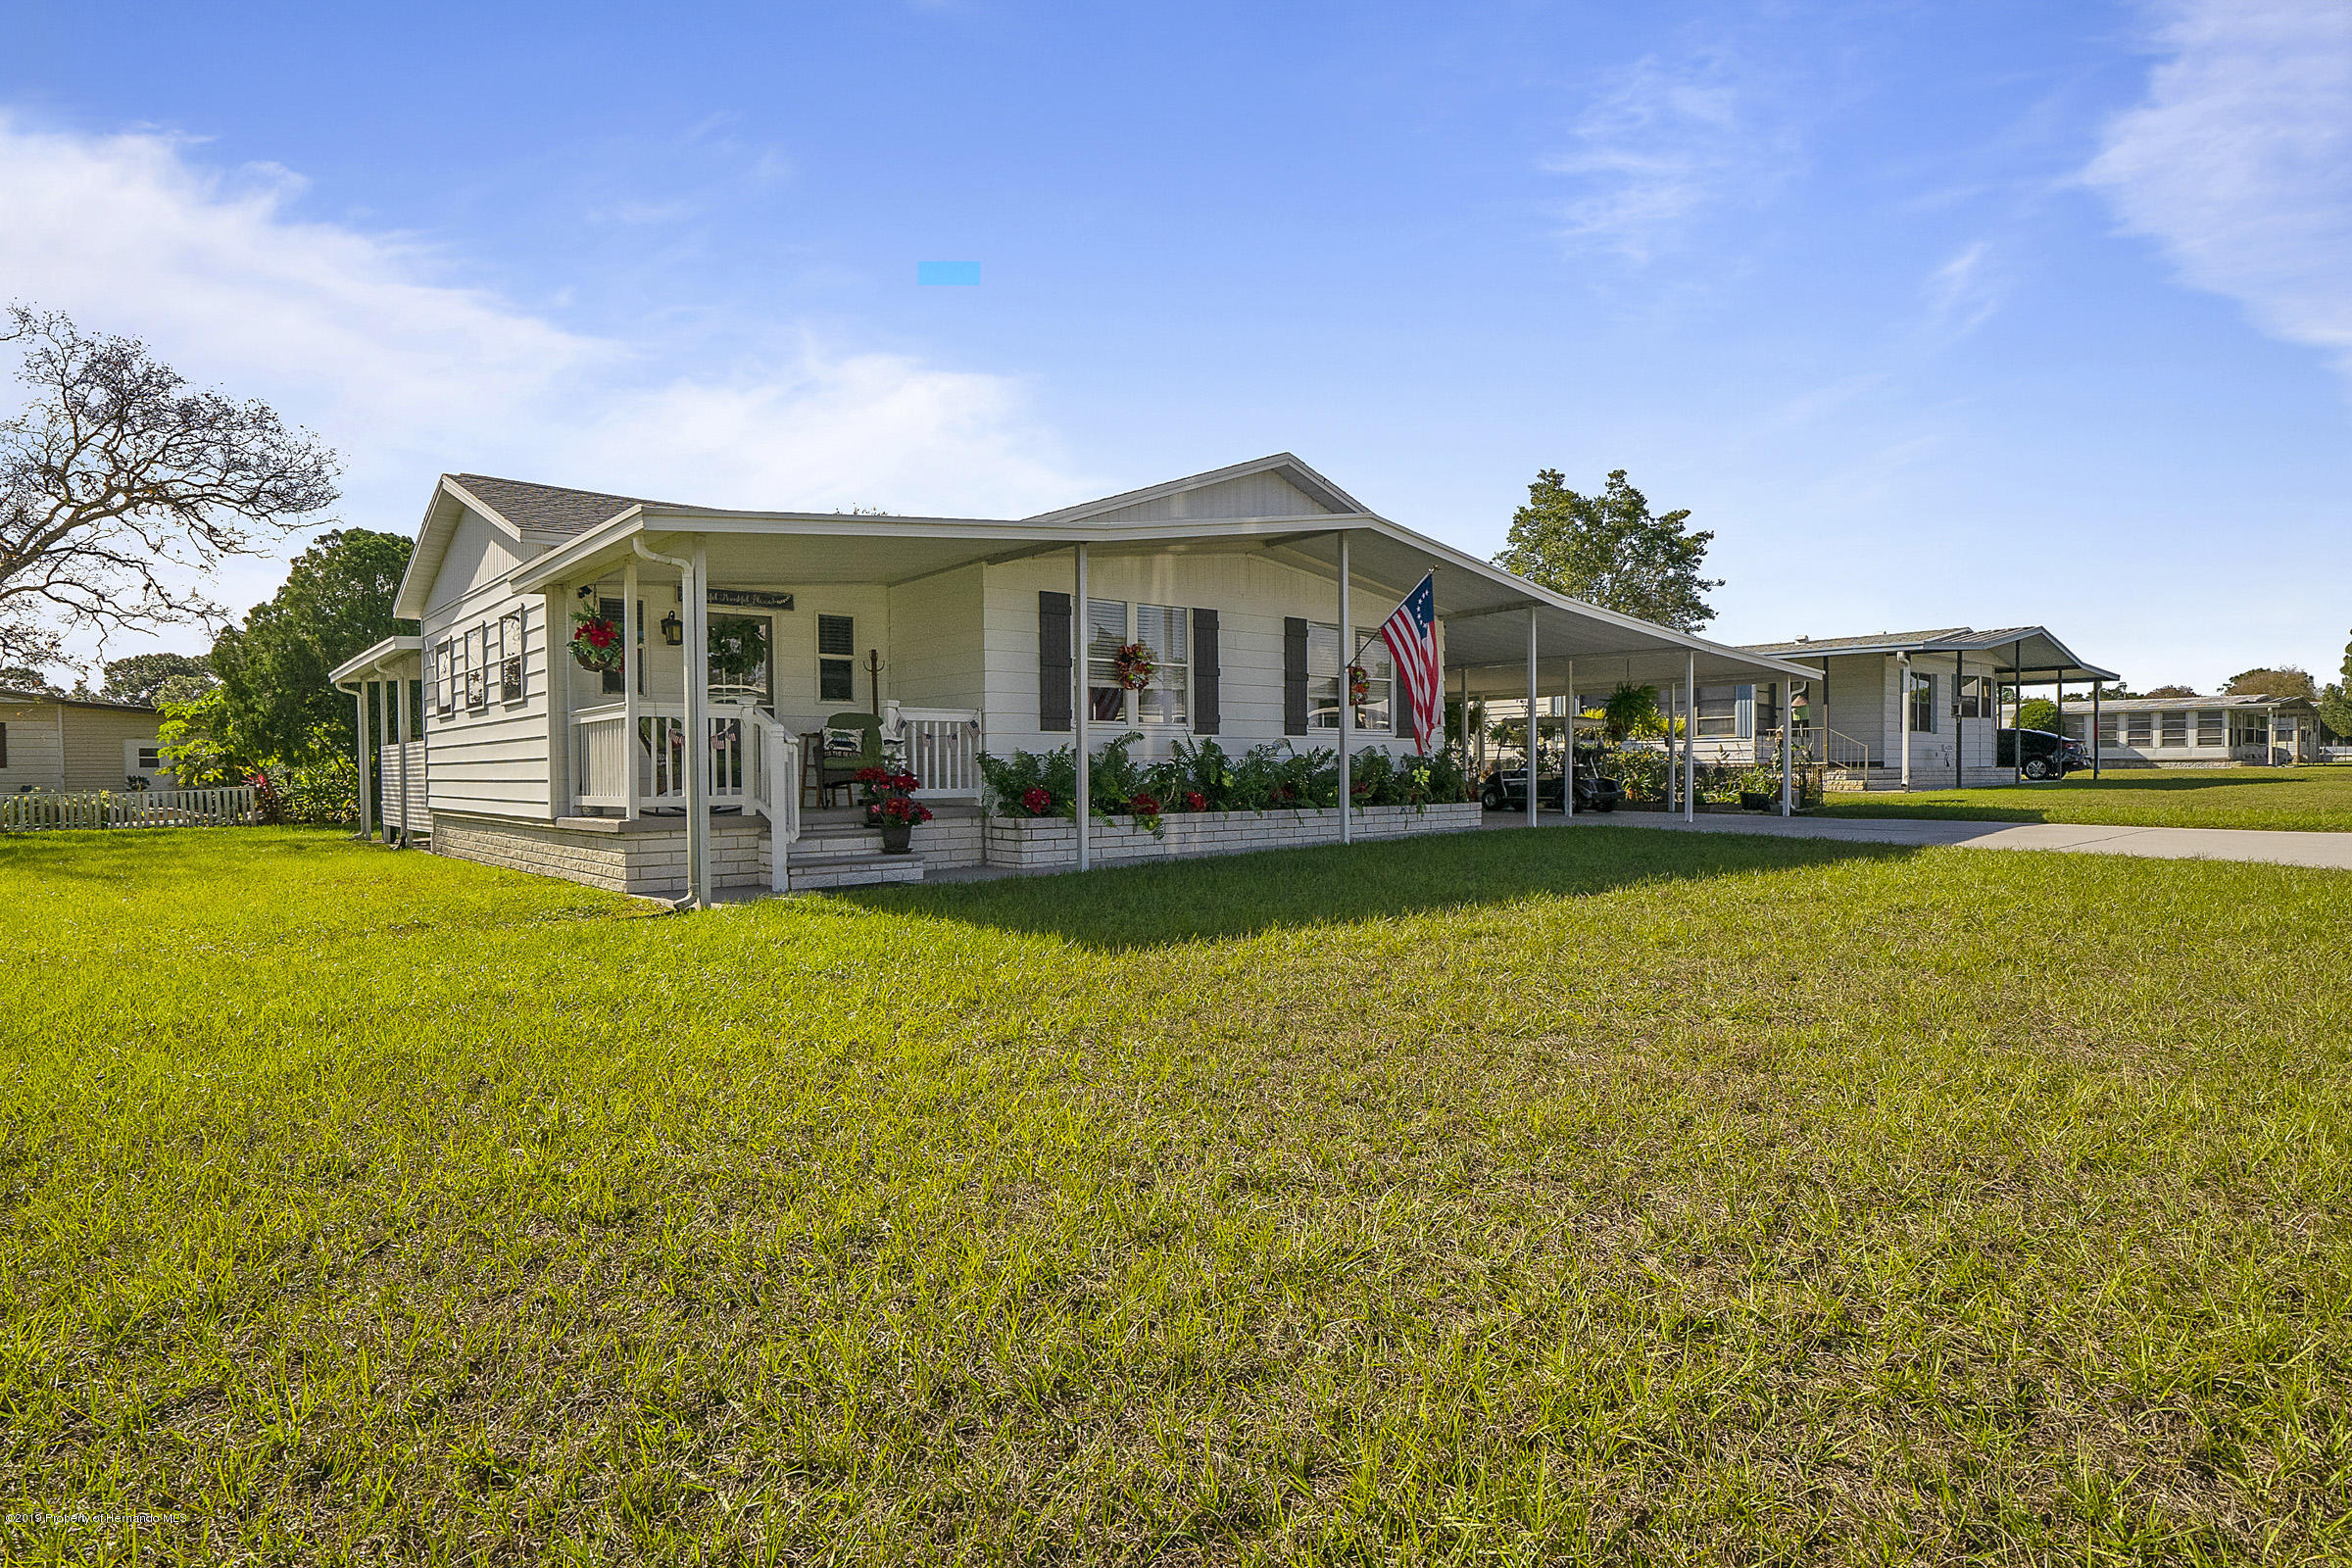 14280 Sandhurst Street, Brooksville, Florida 34613, 2 Bedrooms Bedrooms, ,2 BathroomsBathrooms,Residential,For Sale,Sandhurst,2206101